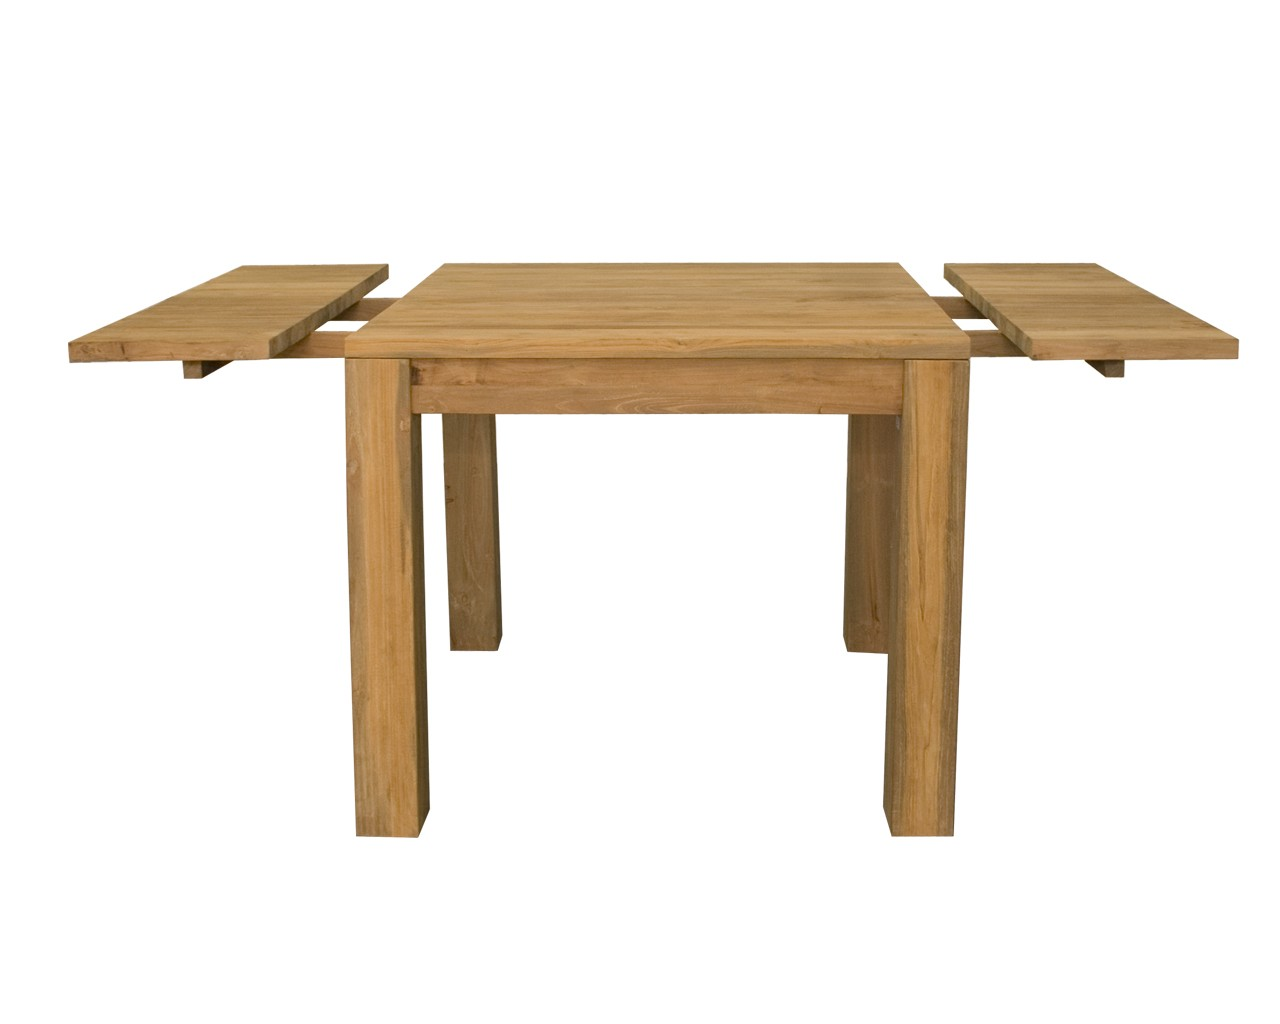 Square Extendable Dining Table The Best Inspiration for  : mino square extending table from samtog.info size 1280 x 1024 jpeg 70kB